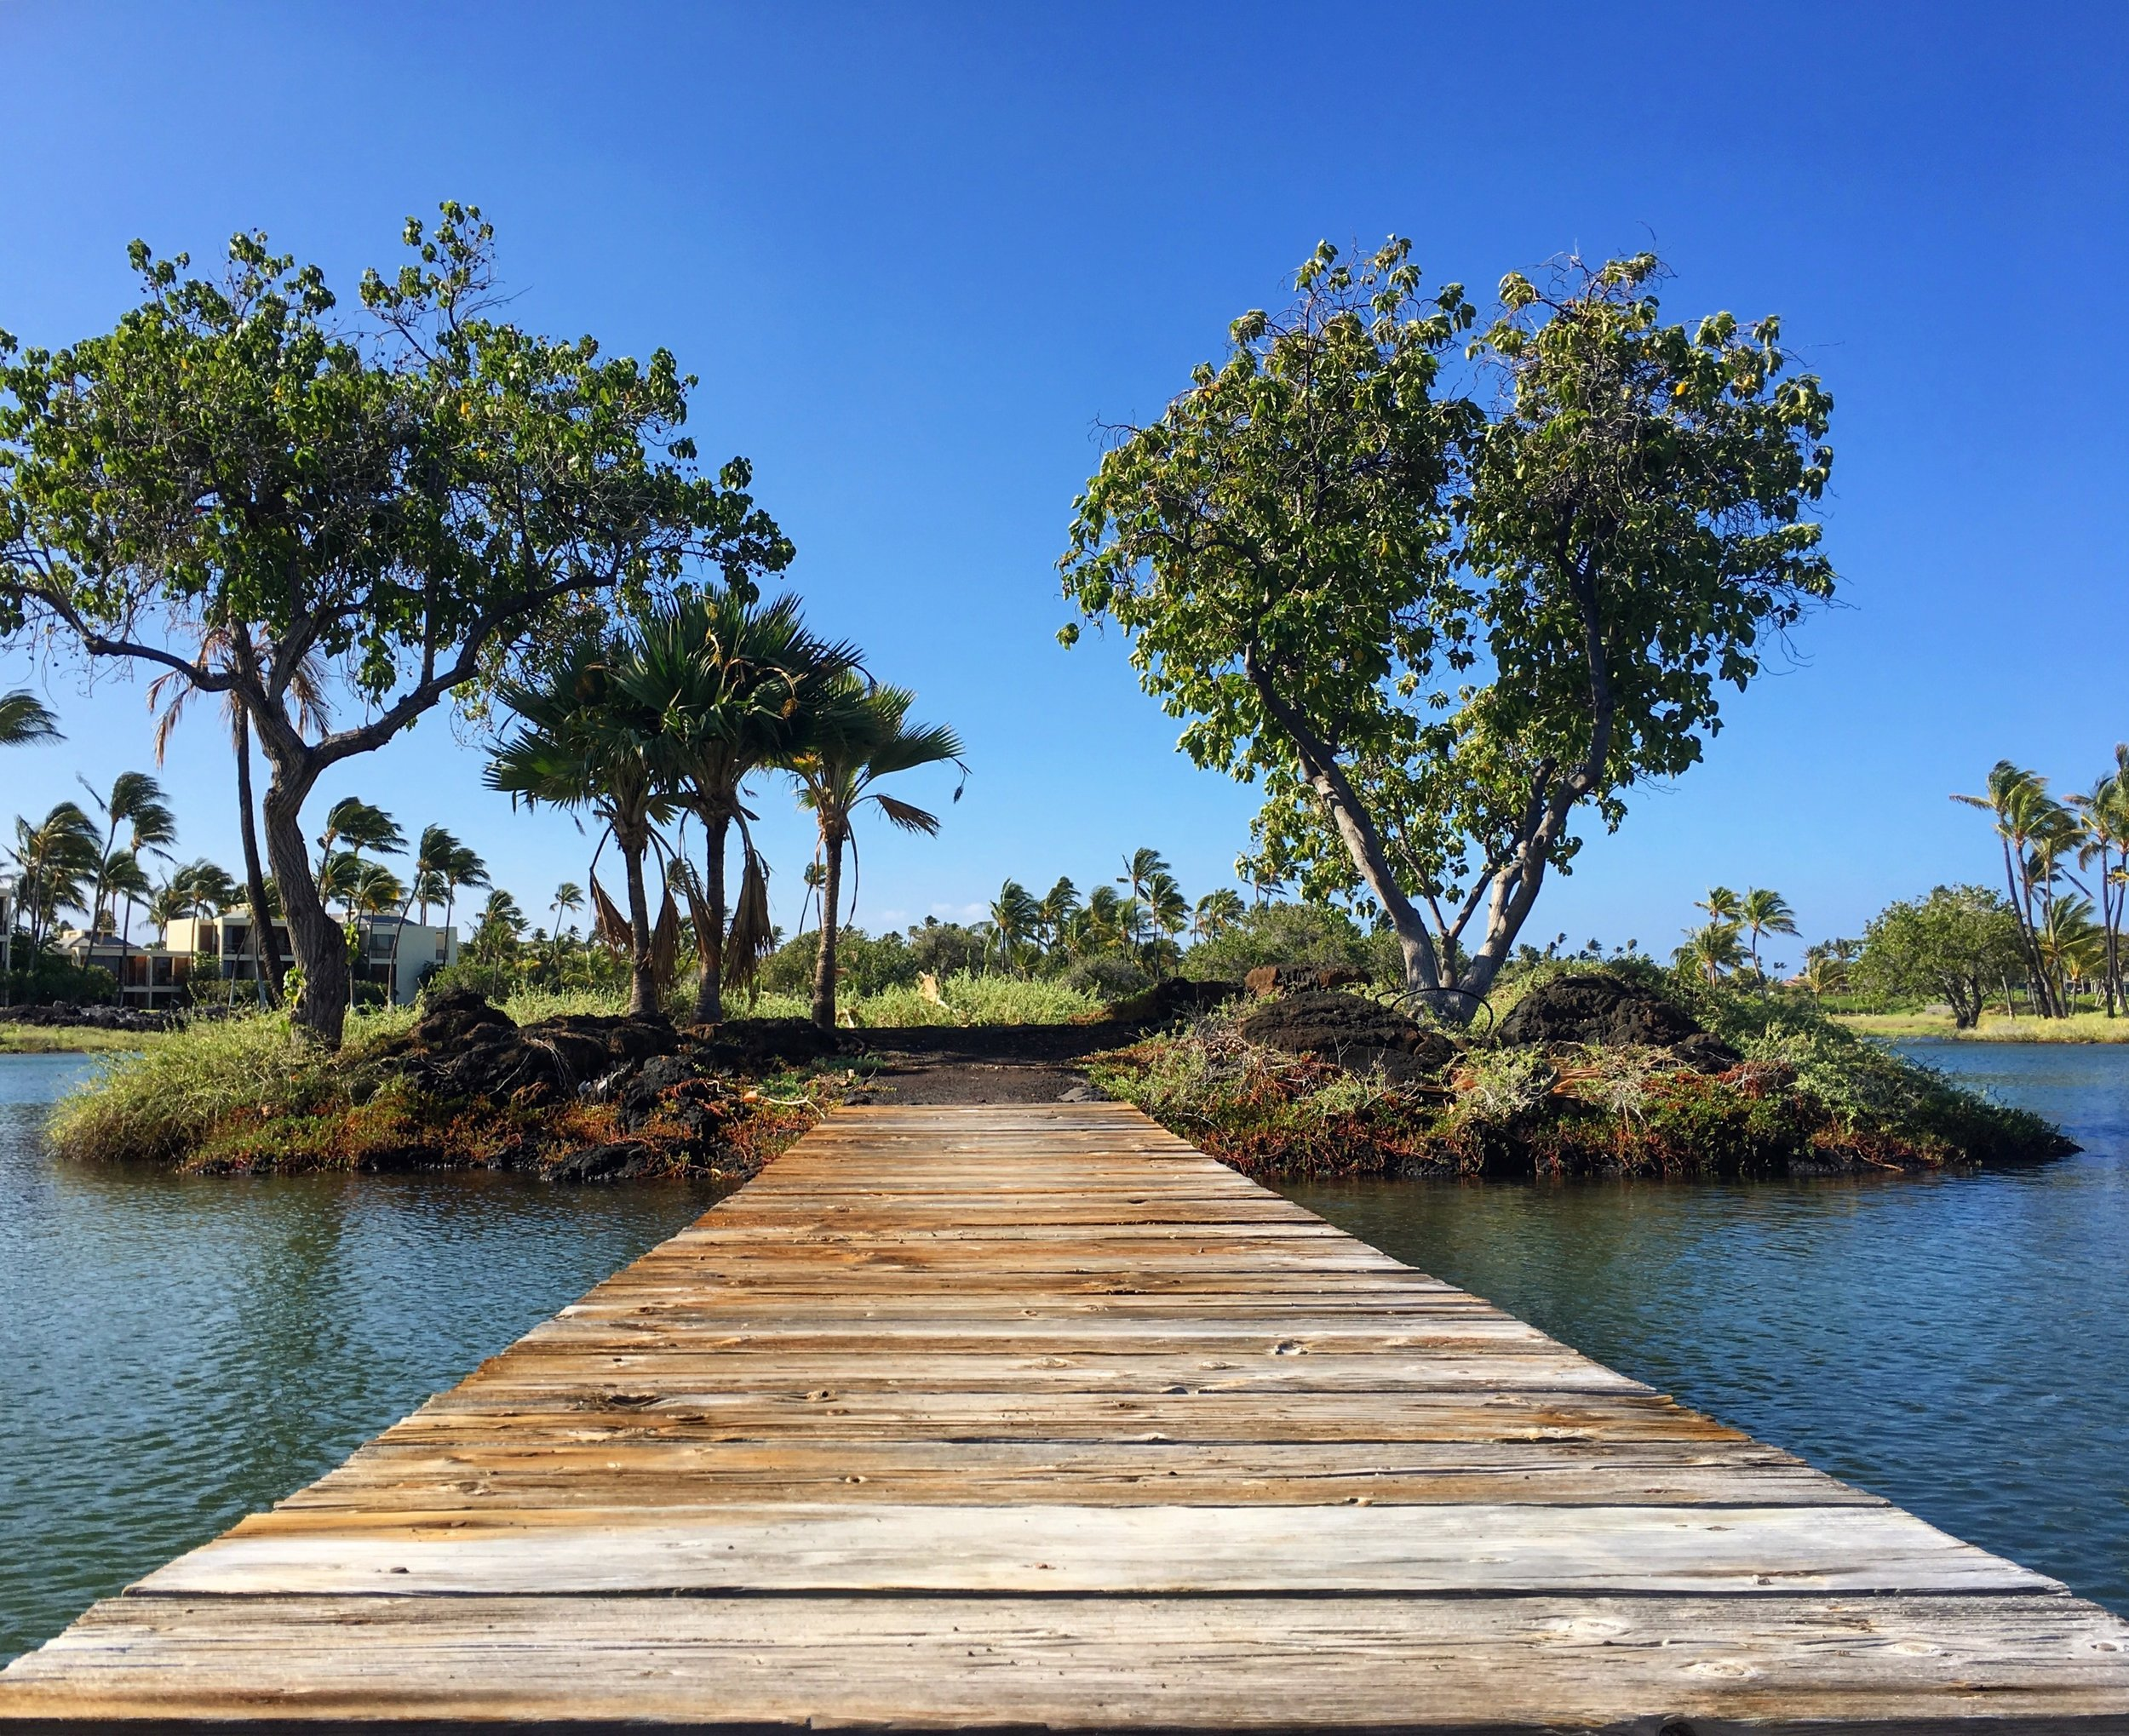 A bridge over one of the seven ancient  Kalahuipua'a Fishponds  used by ancient Hawaiians to raise fish and supplement their ocean fishing efforts.